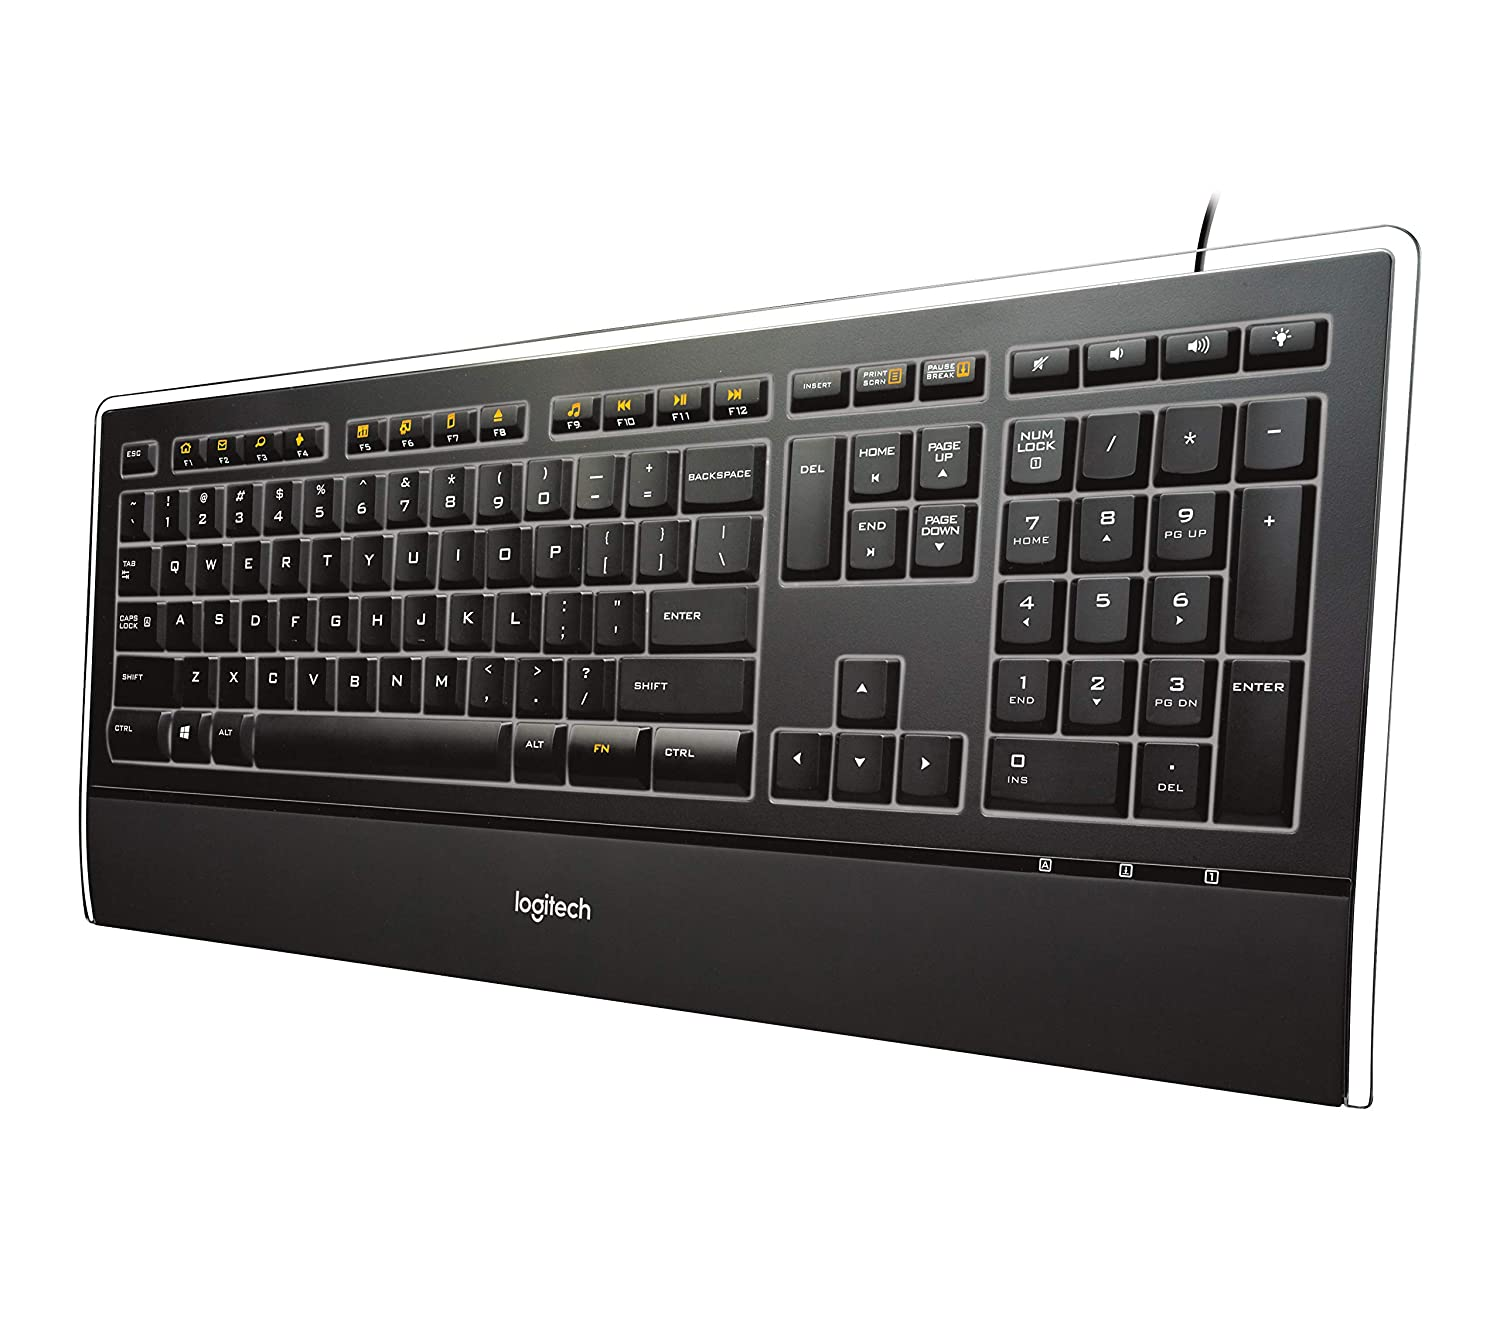 Amazon.in: Buy Logitech Illuminated Ultrathin Keyboard with Backlighting  Online at Low Prices in India | Logitech Reviews & Ratings